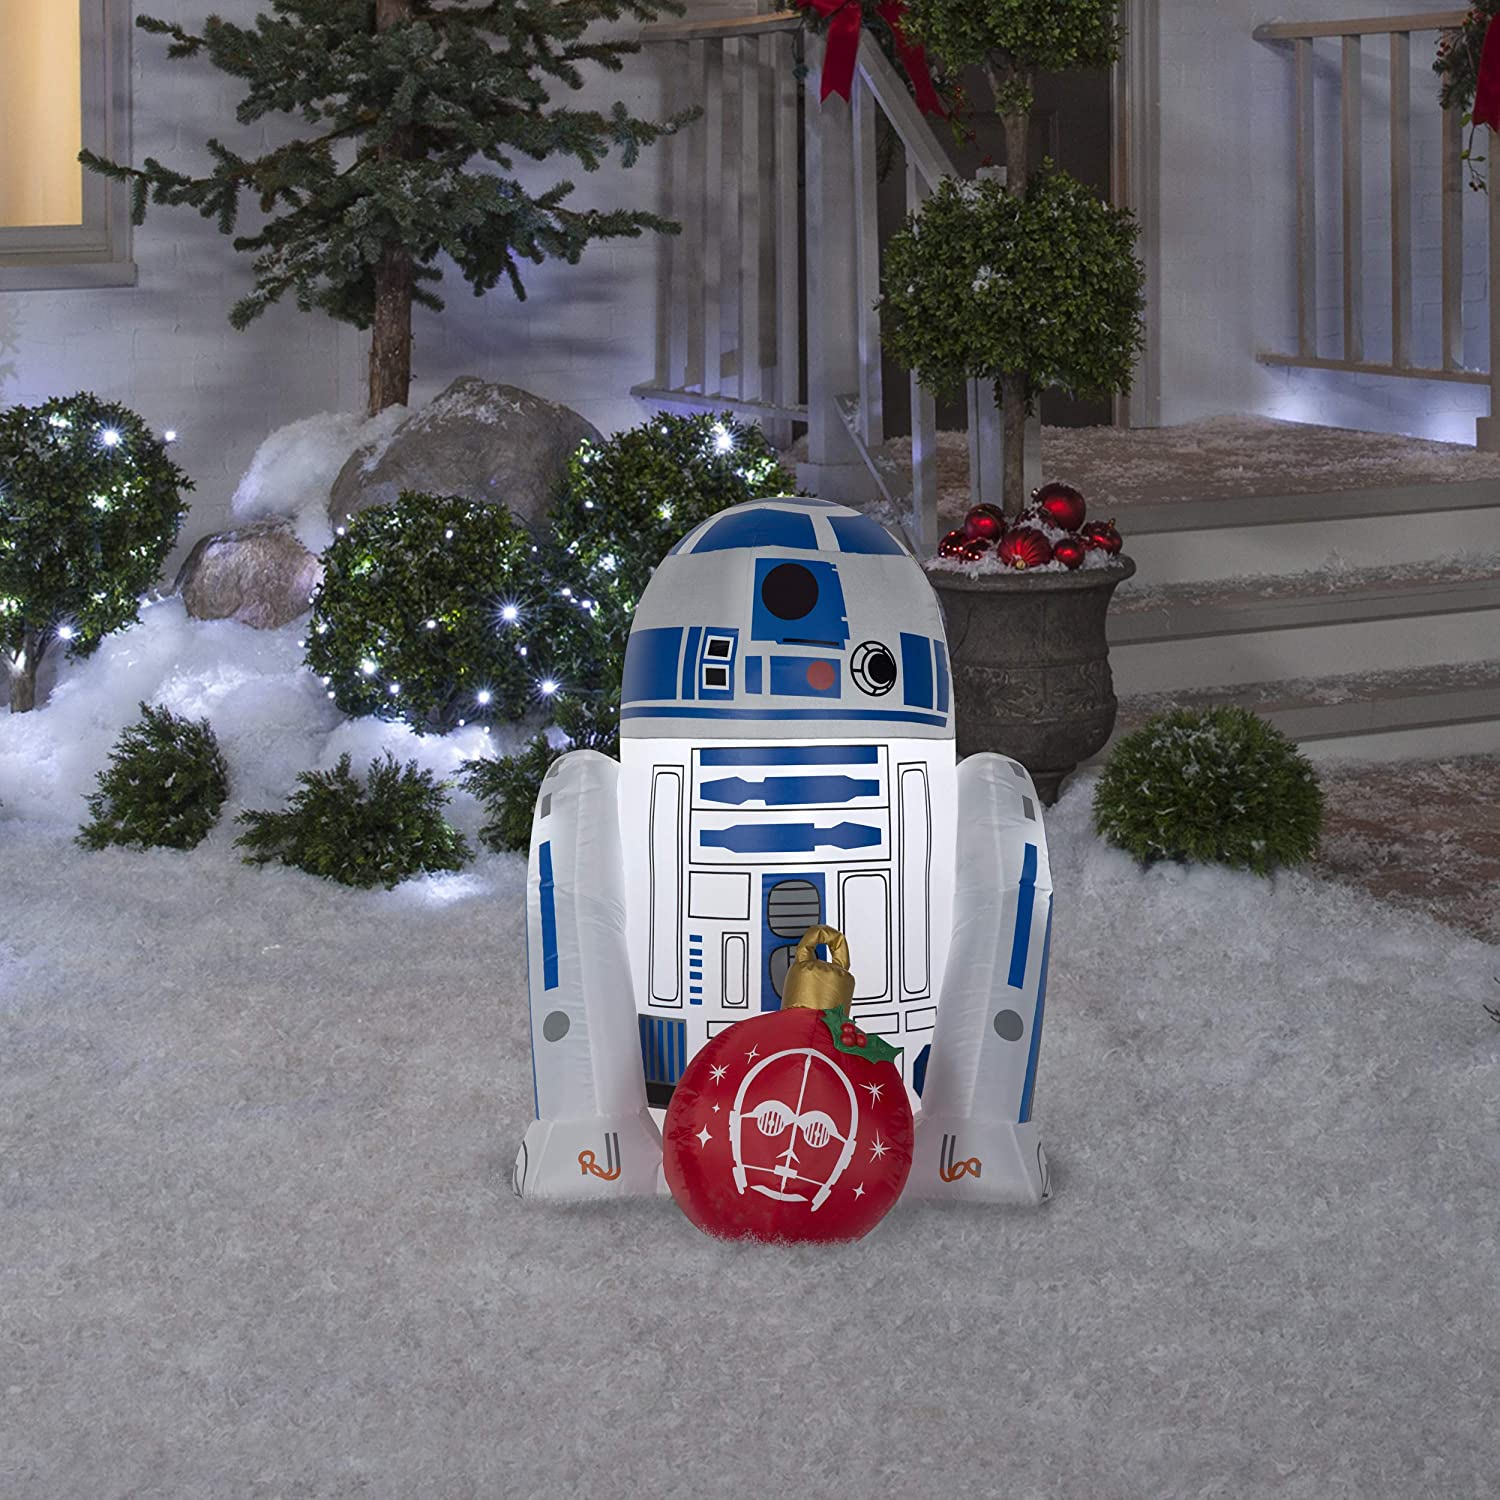 Gemmy Star Wars R2D2 3FT Christmas Inflatable Outdoor Yard Decoration -Lights Up with LED - Easy Set-Up -Self Inflating